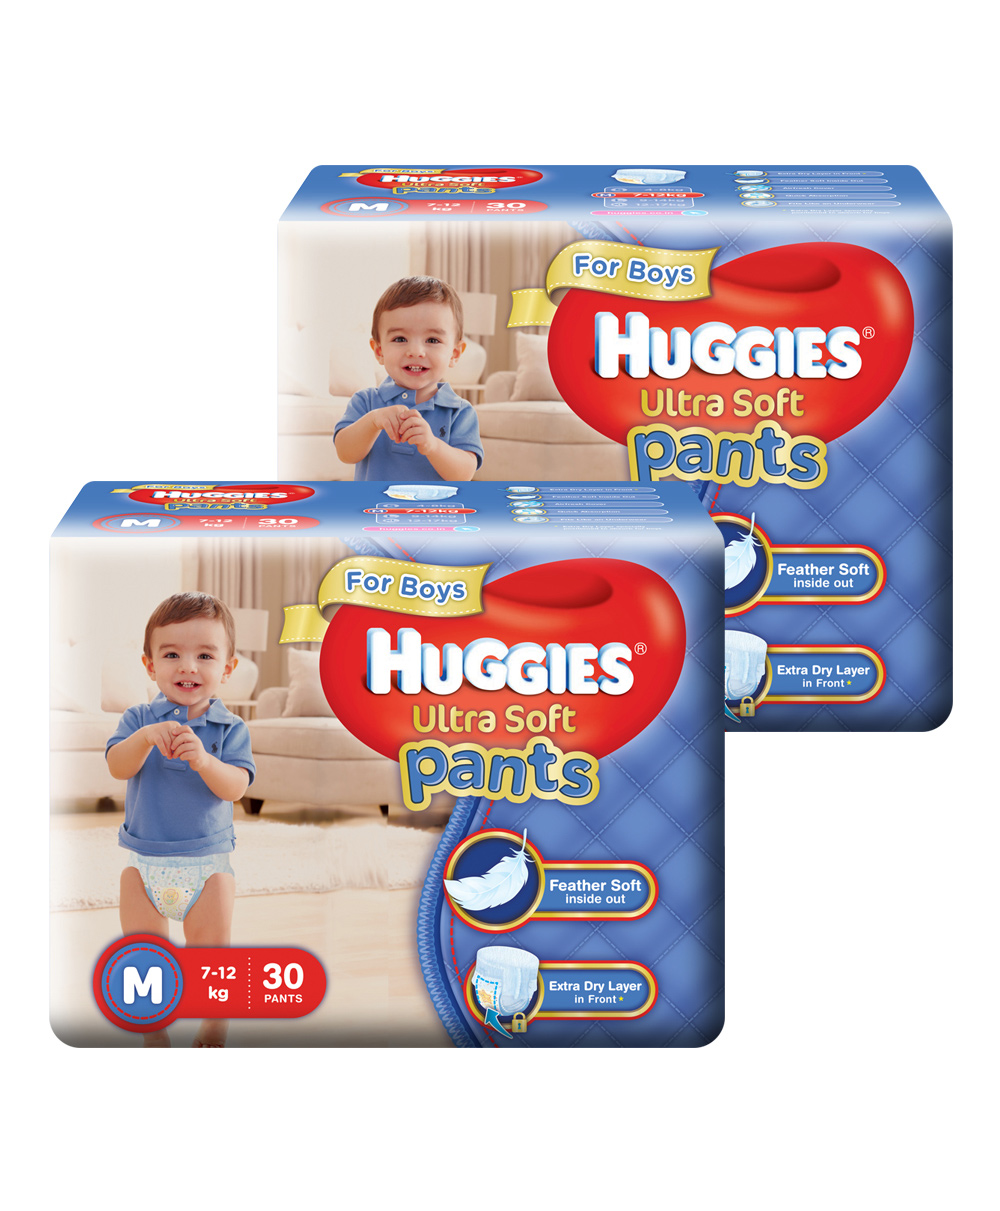 Extra 10% Off On Entire Huggie Range By Firstcry | Huggies Ultra Soft Pants Medium Size Premium Diapers For Boys 30 Pieces - Pack Of 2 @ Rs.778.70